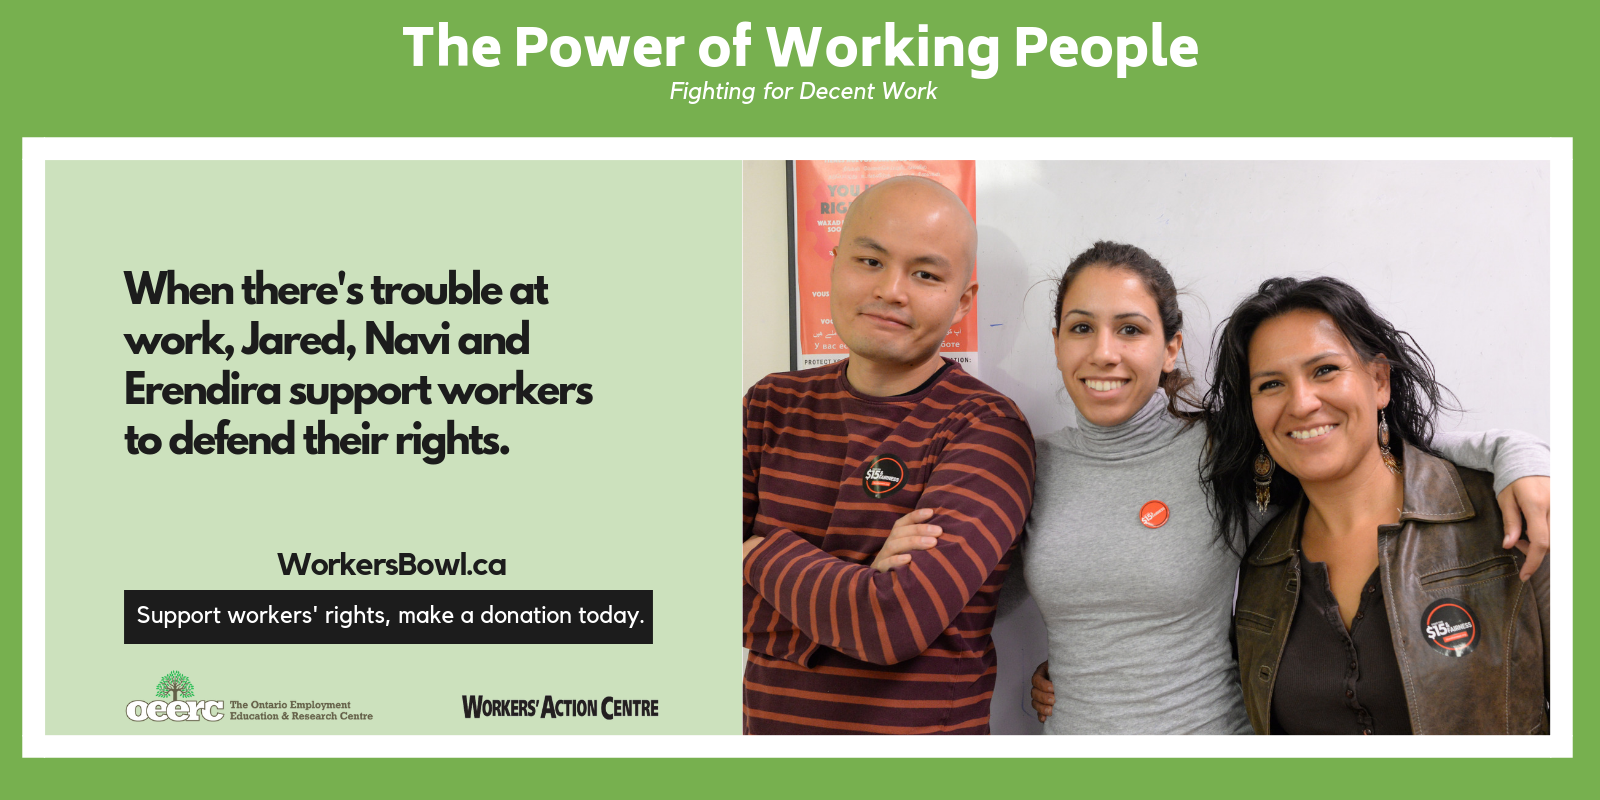 The Power of the Working People - Interns Jared, Navi and Erendira